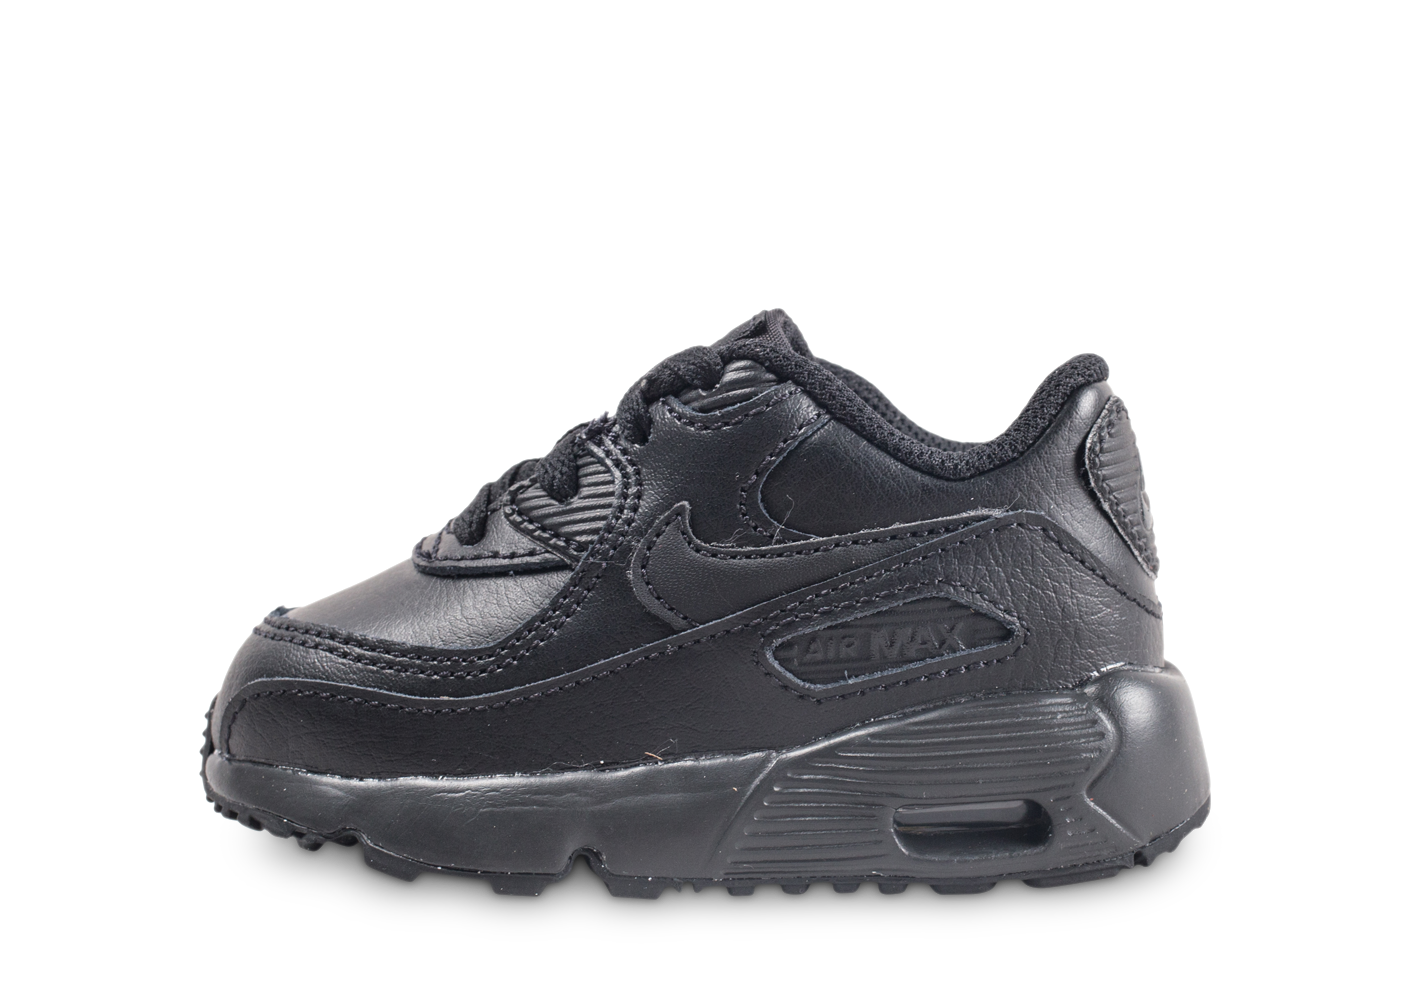 Nike air max 90 leather noire bébé...